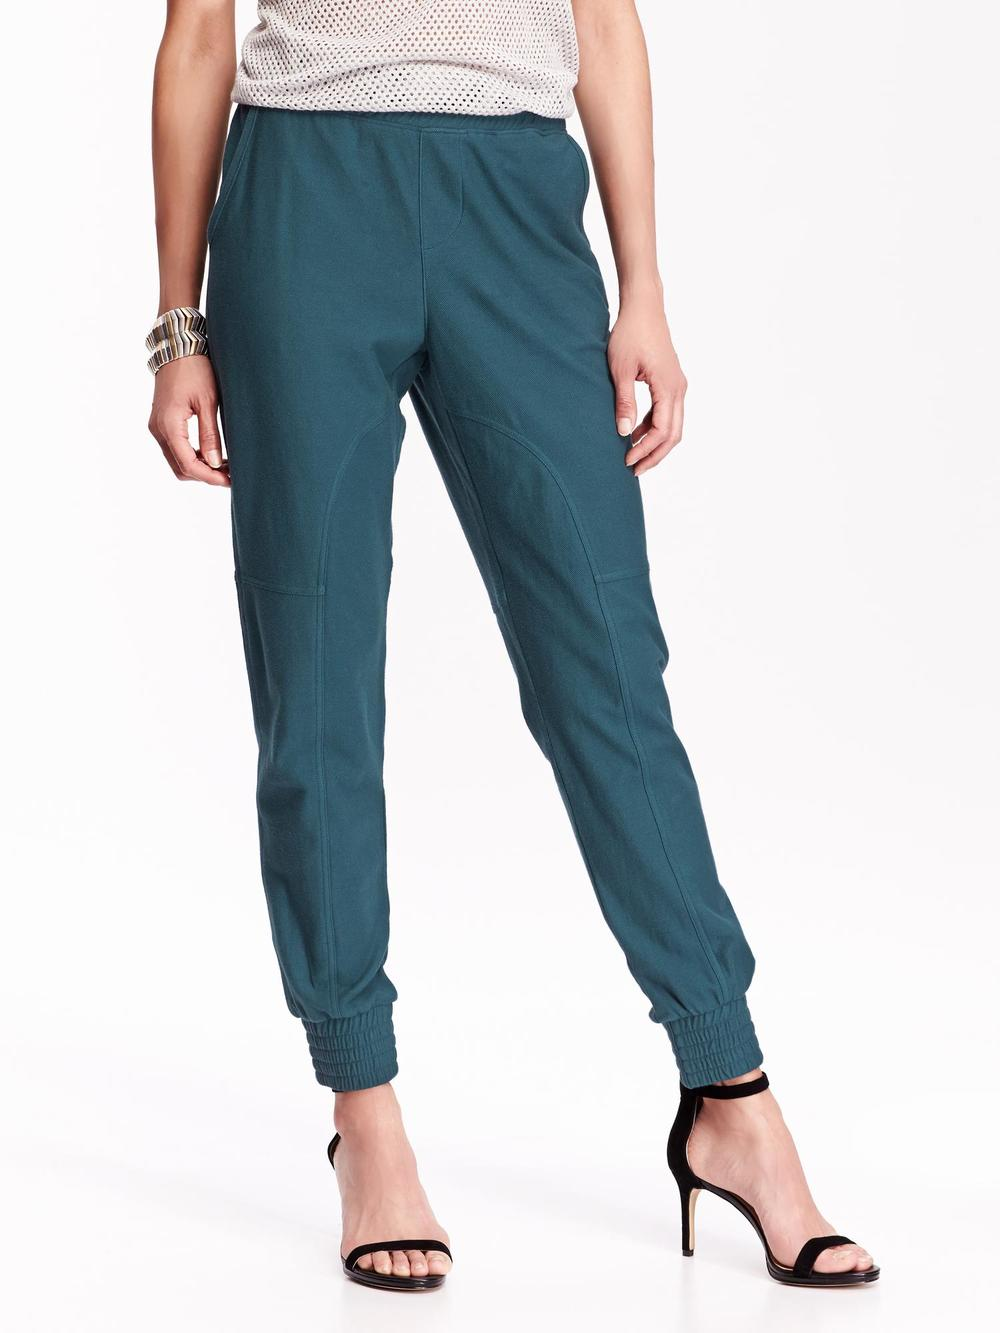 Tall Twill Joggers. Old Navy. Was: $29 Now: $22.